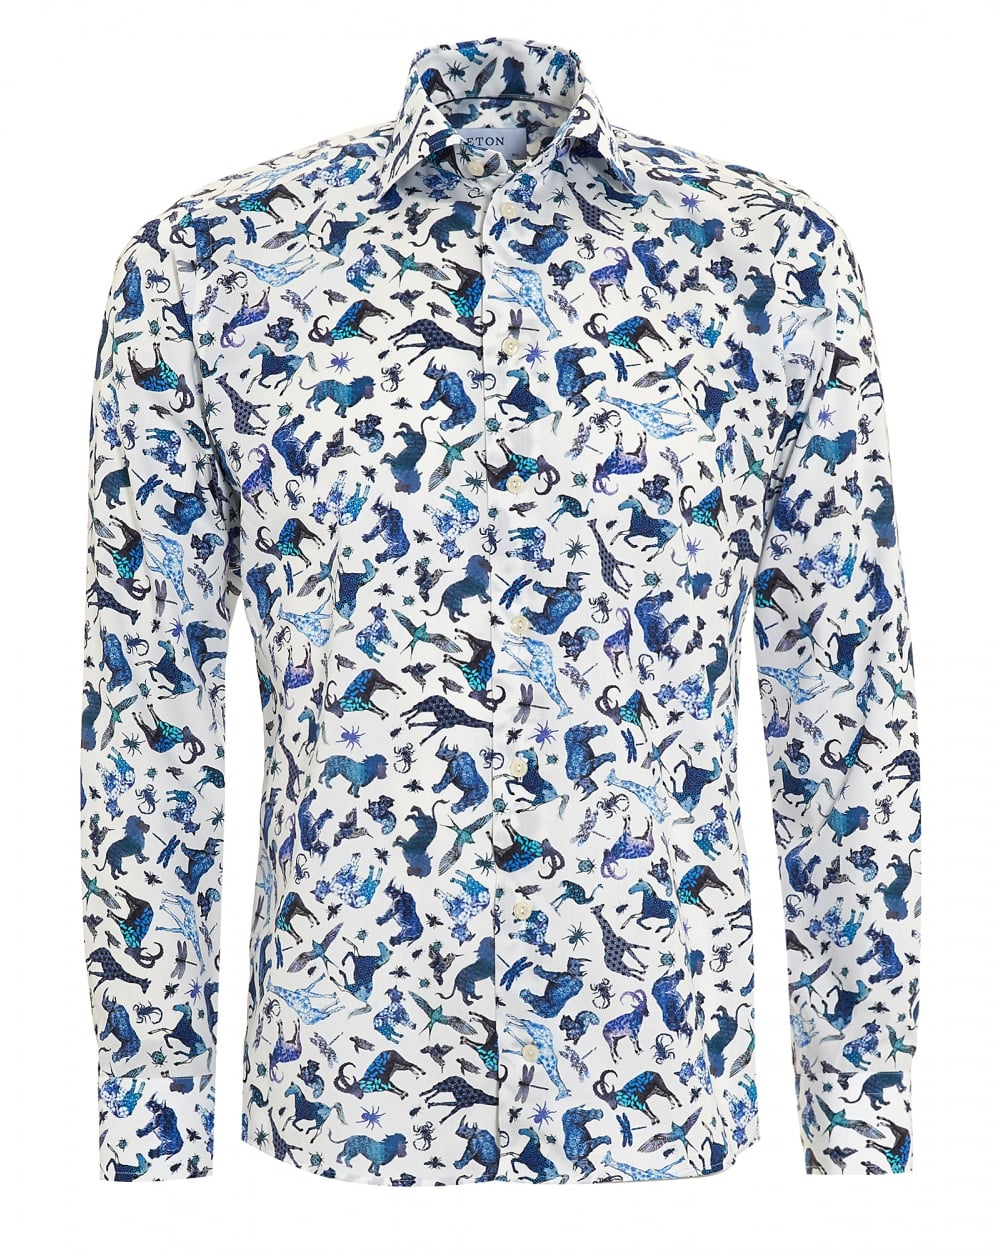 Men's printed shirts areakey pieces in any closet. Choose sophisticated paisley prints or sportier styles with camo or floral designs. Incorporate a printed shirt into .